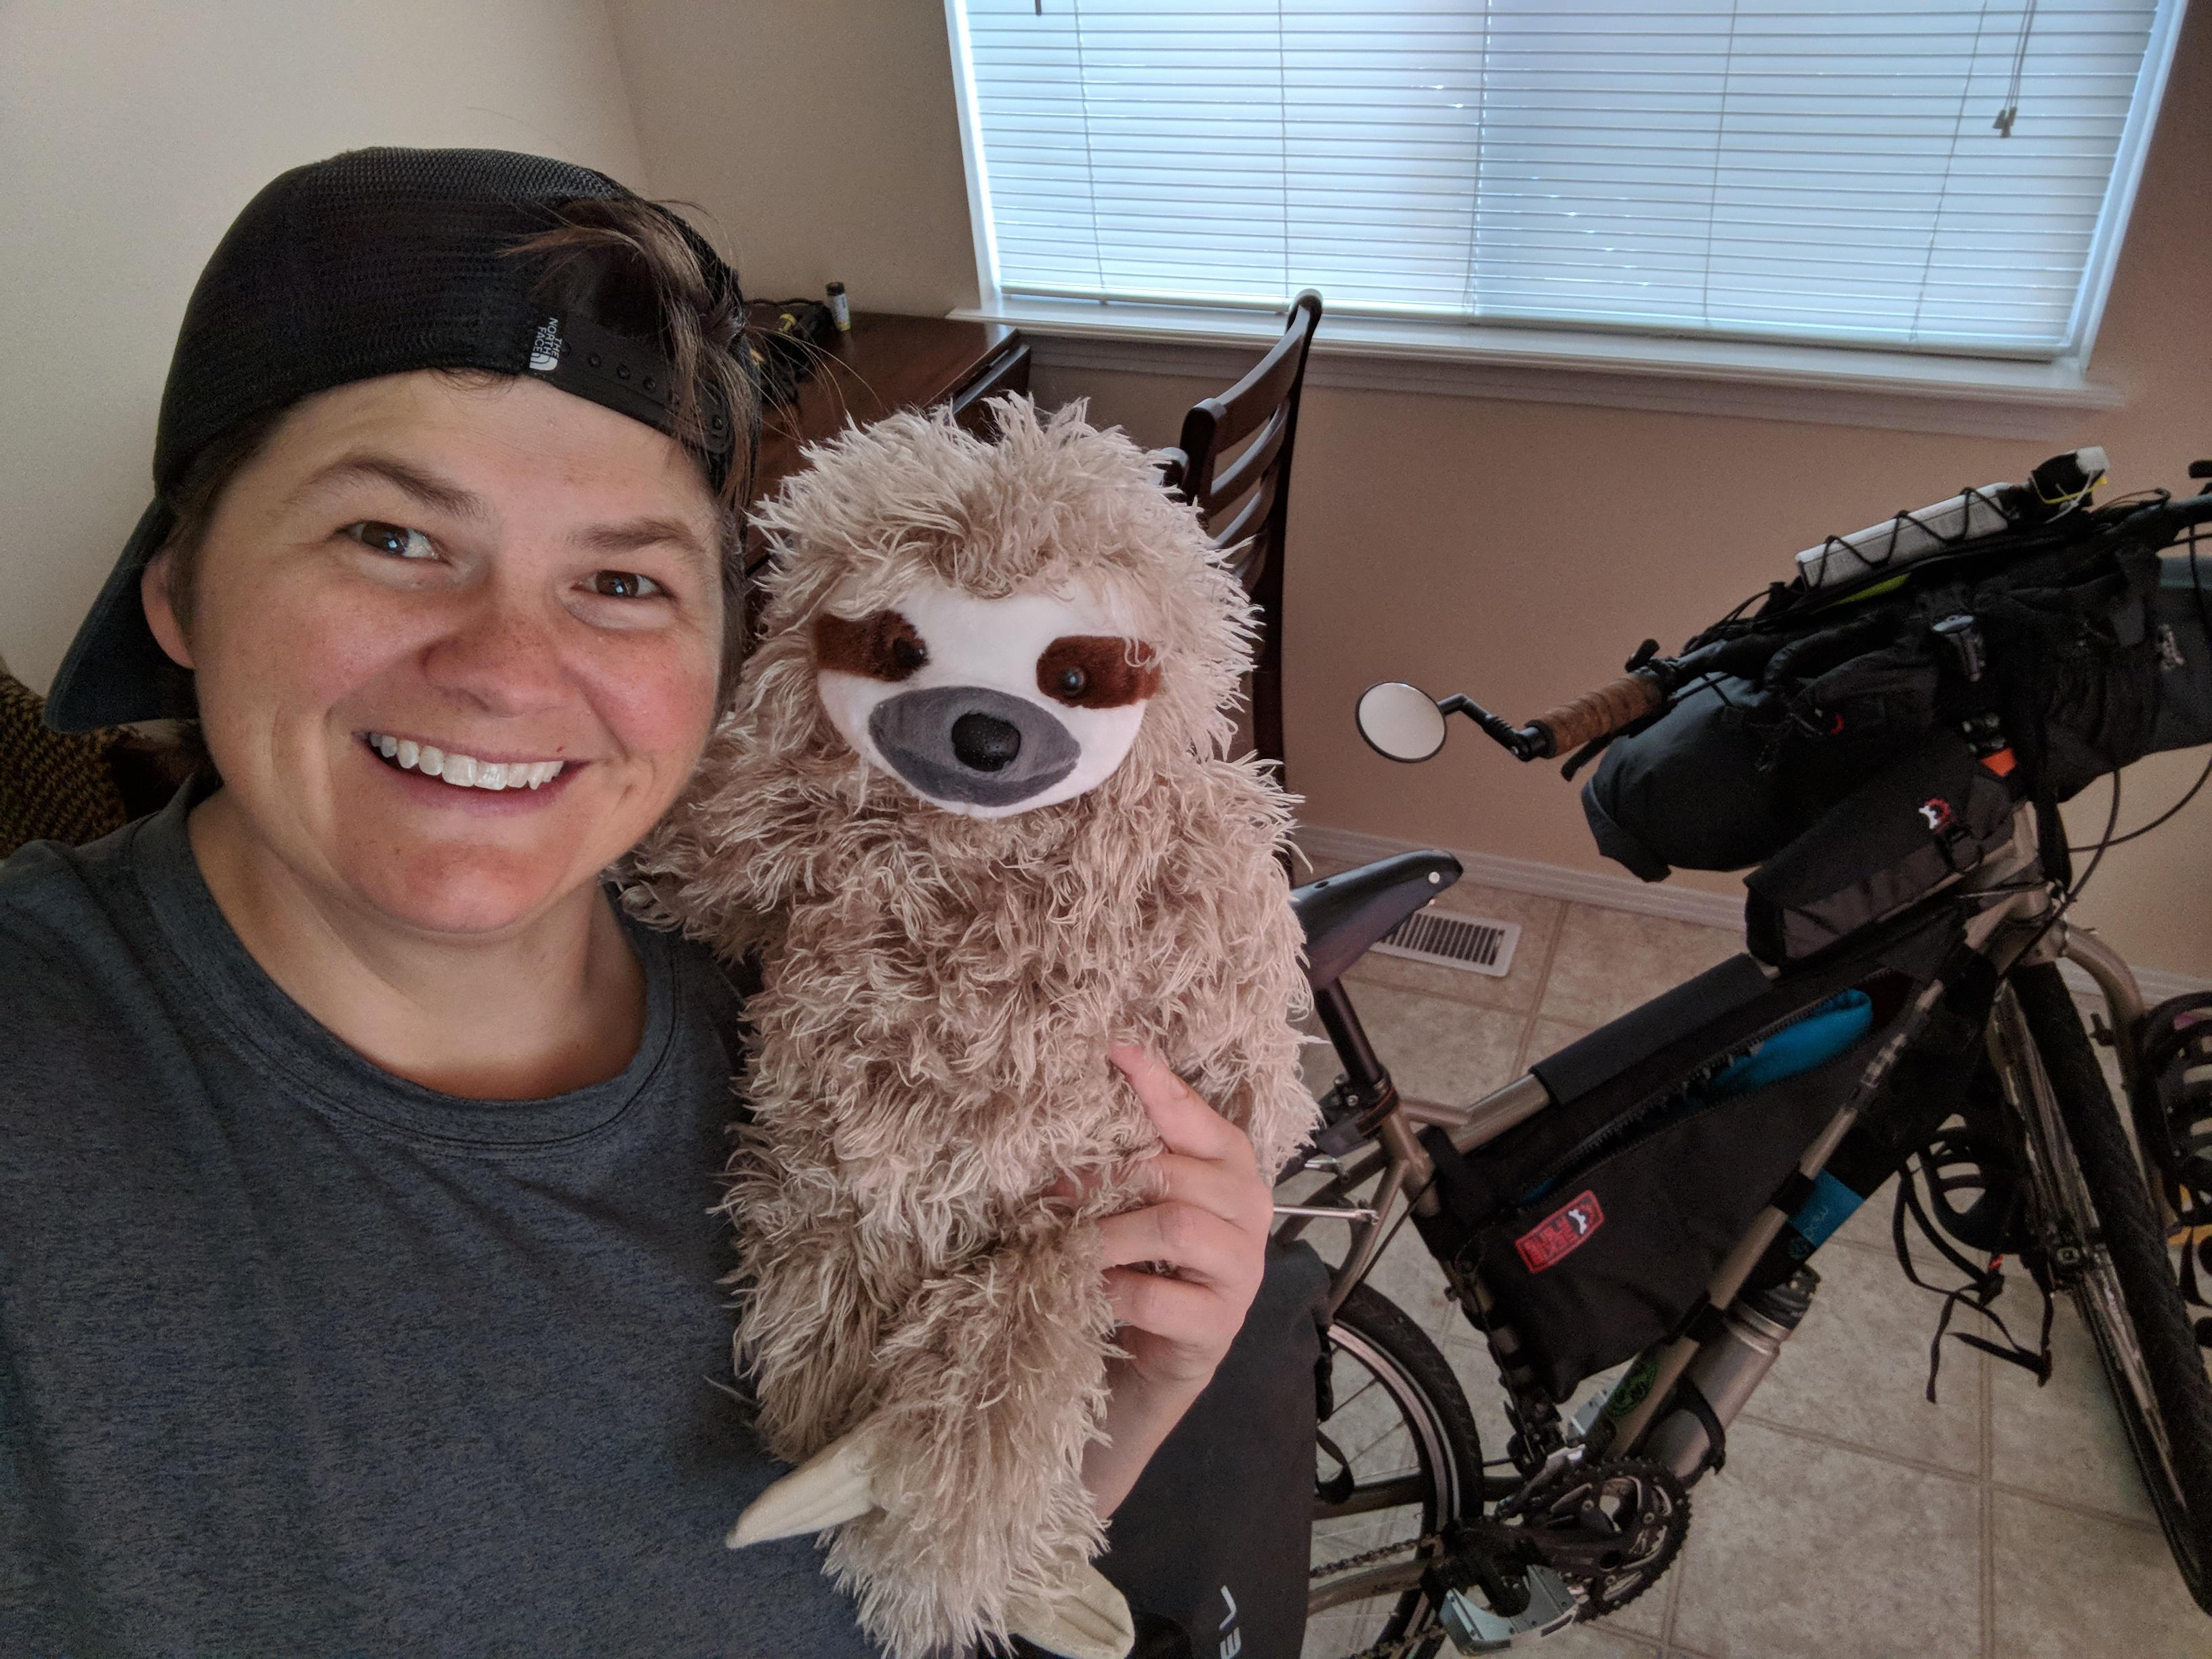 Jenni and Sammy (our stuffed sloth mascot) pose by their bike